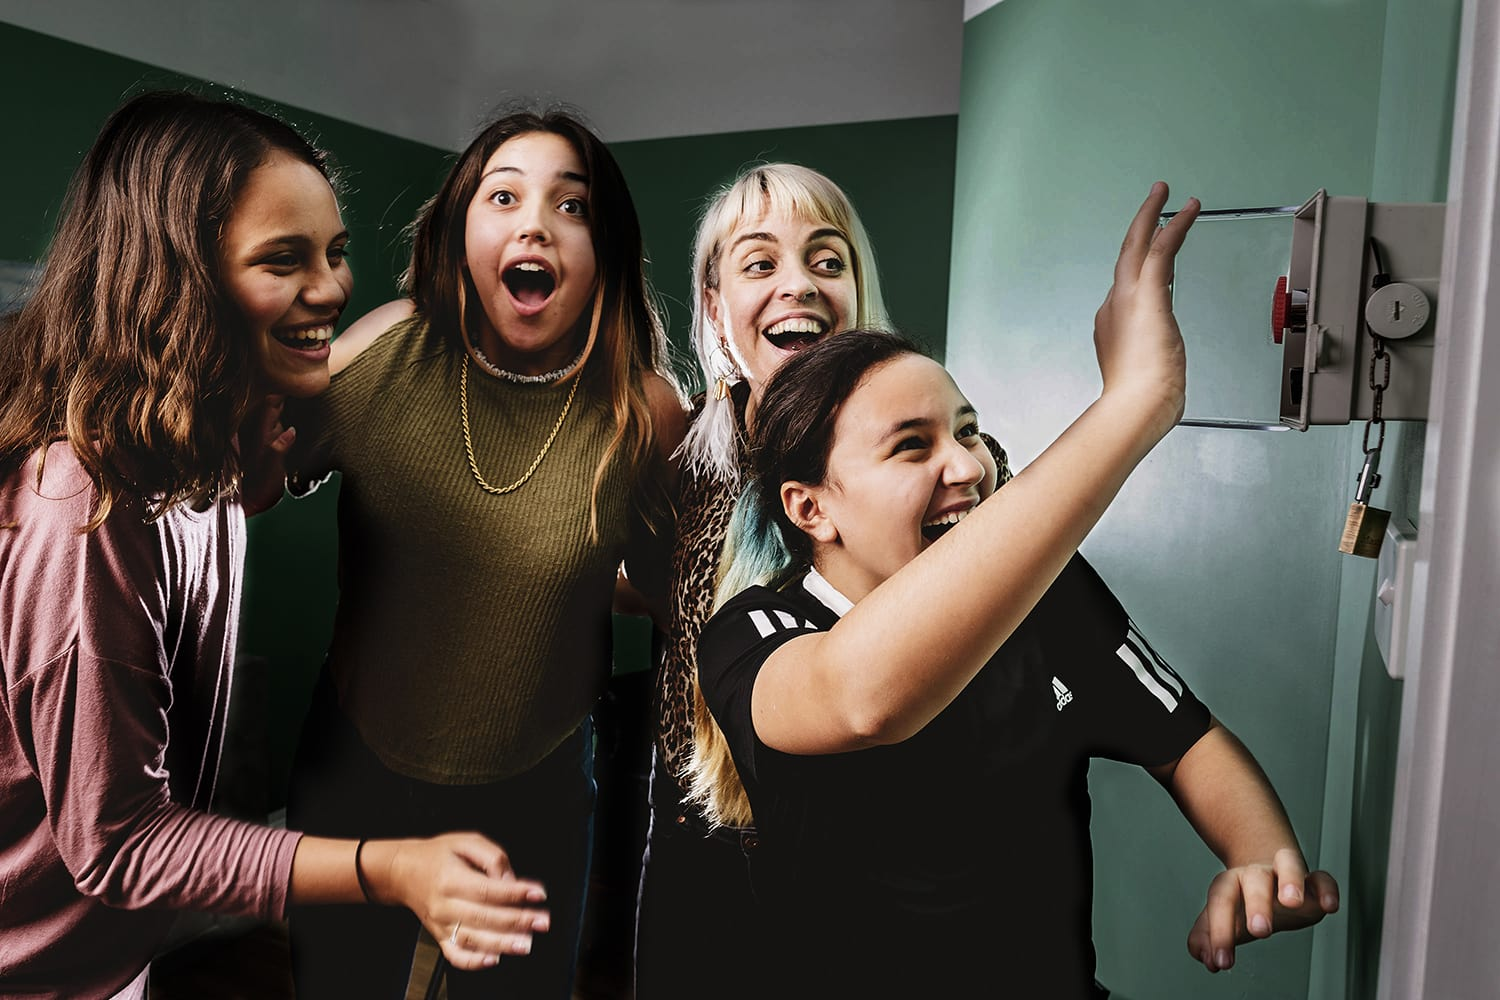 Escape Room Experience For Groups of 4 - Brisbane - Week day